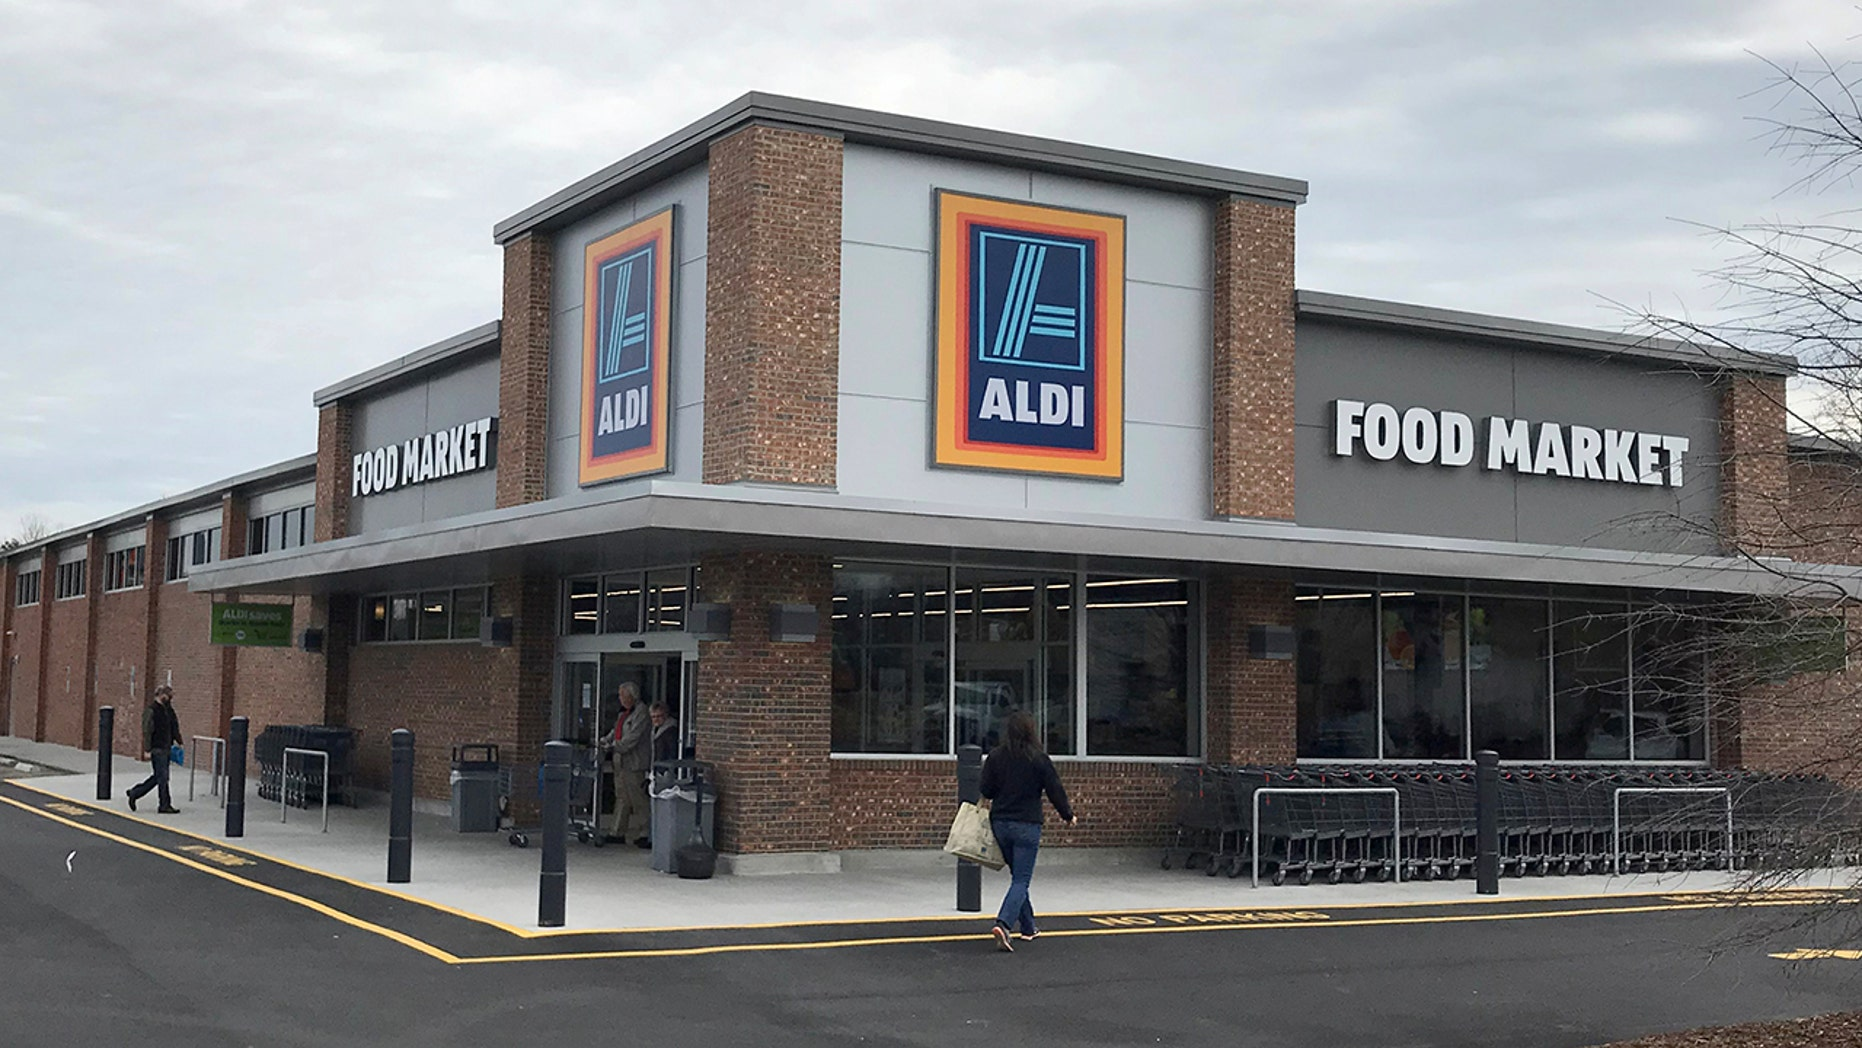 The American branch of Aldi markets scored 7 points of a possible 60 in a study by the  Center for Biological Diversity and the Ugly Fruit and Veg Campaign.